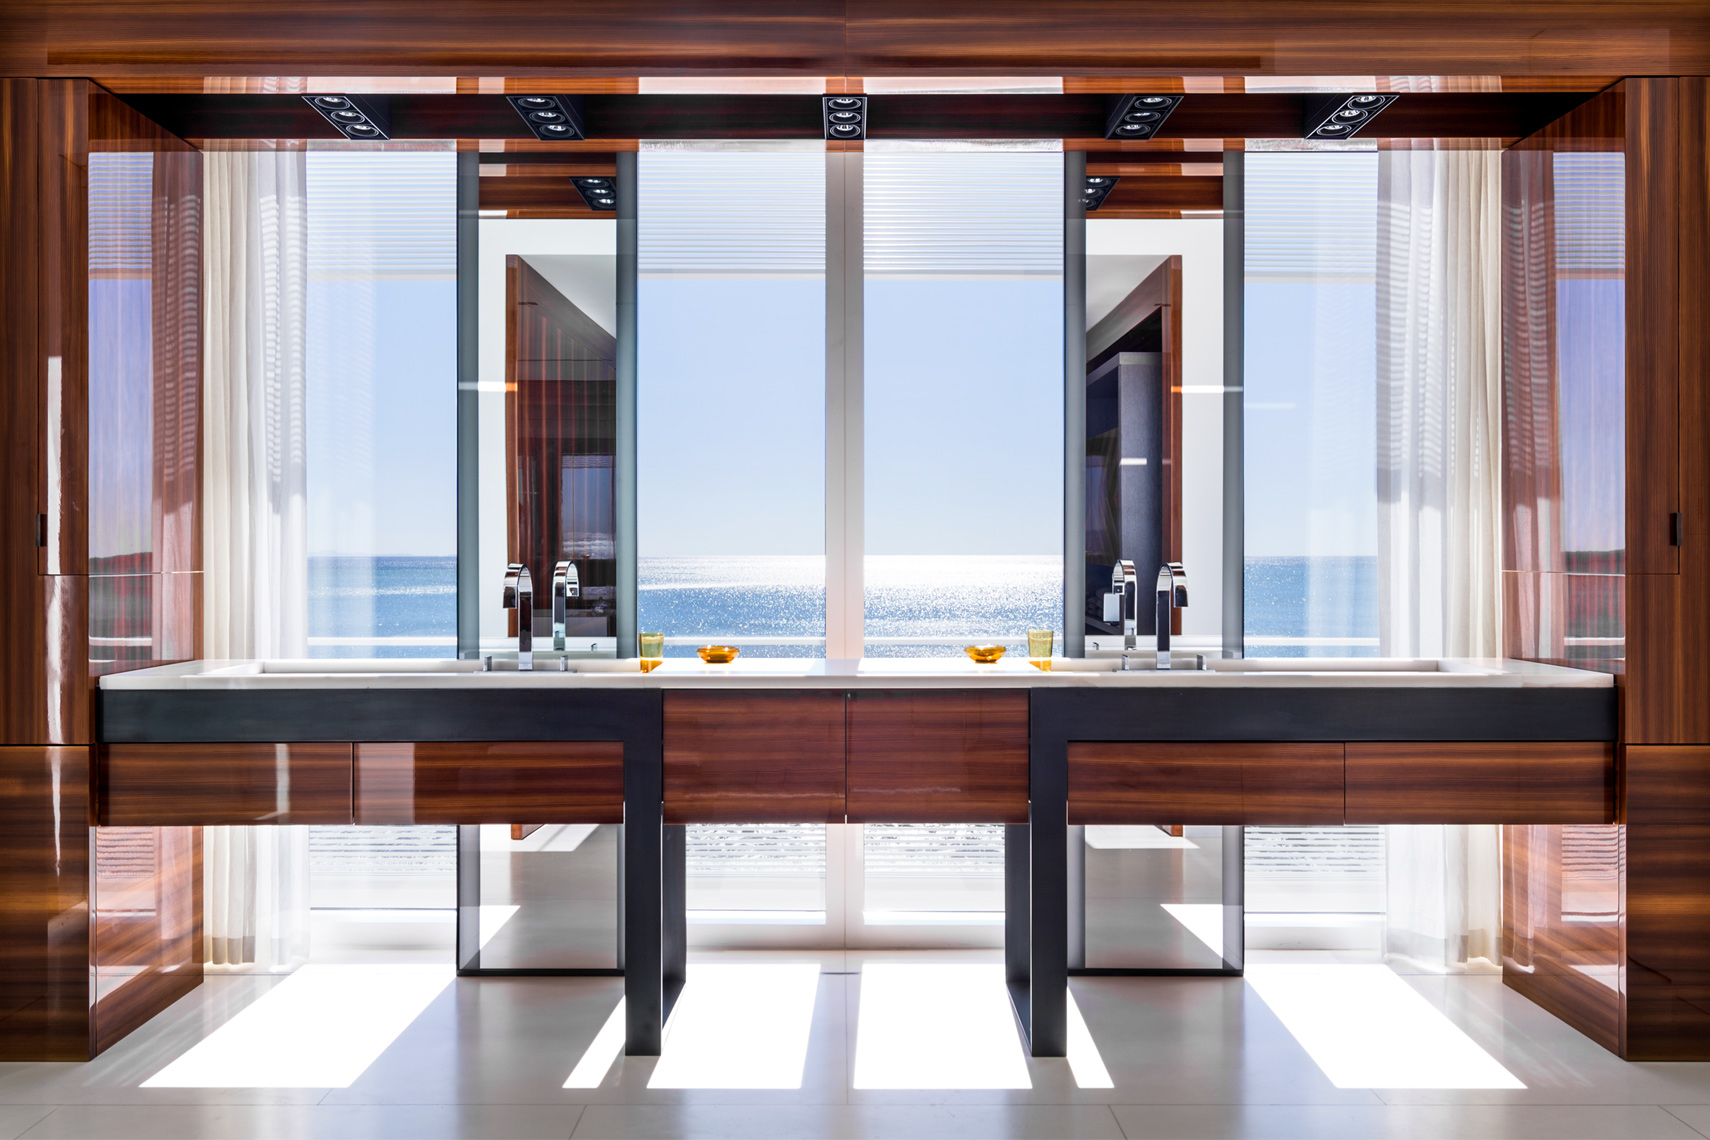 Malibu, Richard Meier, Modern Architecture, Luxury bath